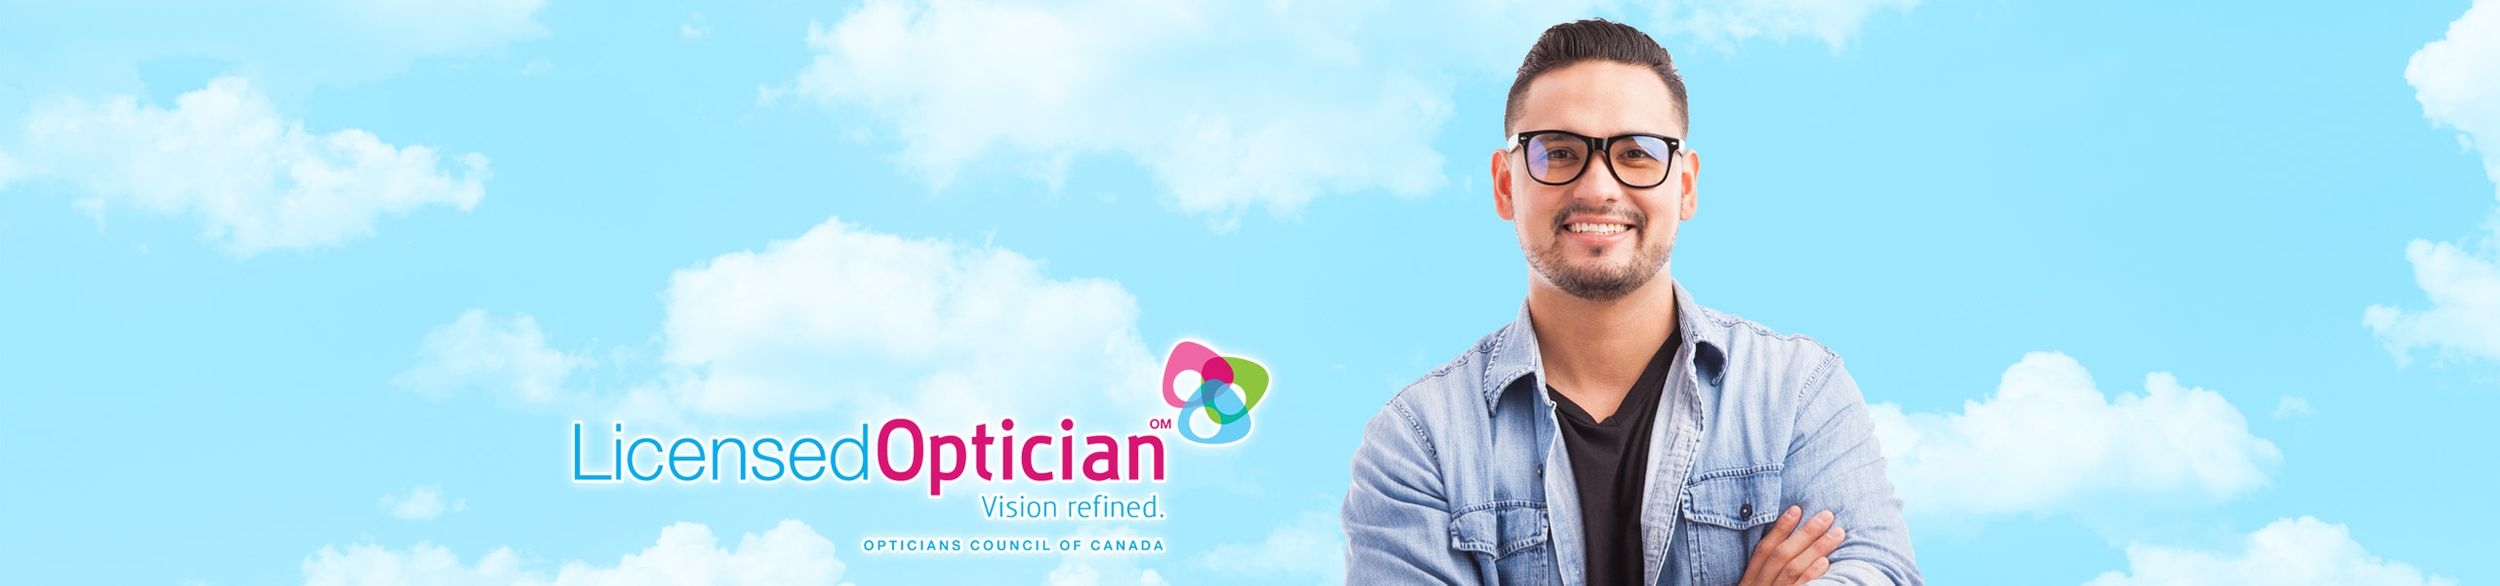 Licensed Optician | Guy with Glasses